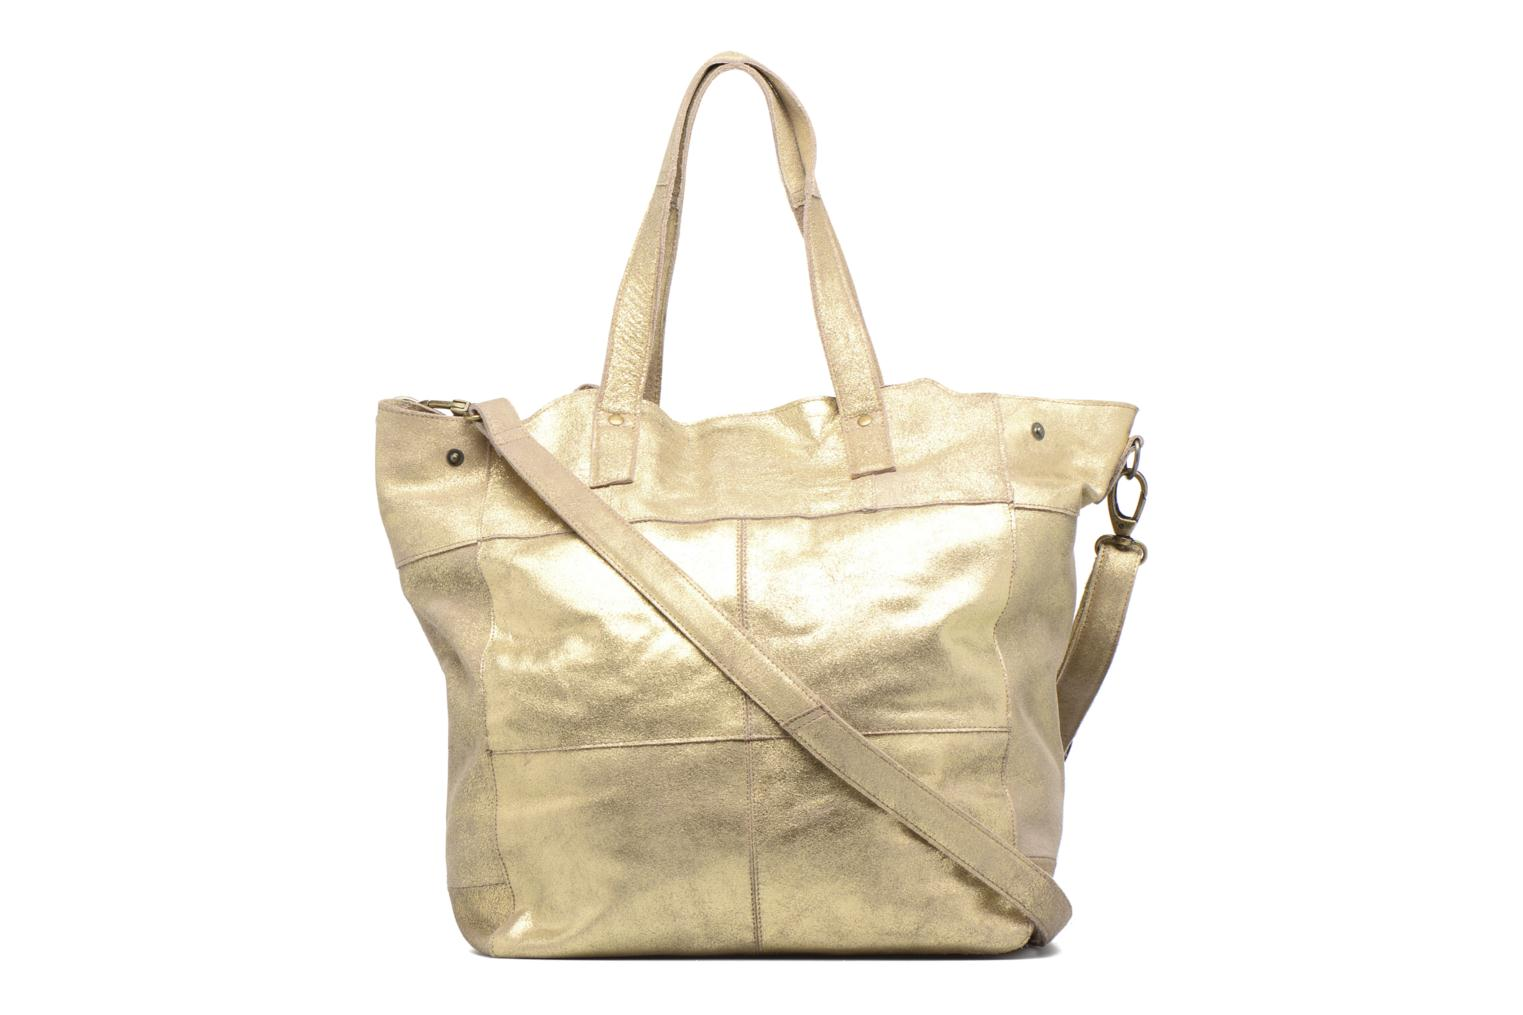 Handbags Pieces Vanity Leather Big bag Foil Bronze and Gold front view